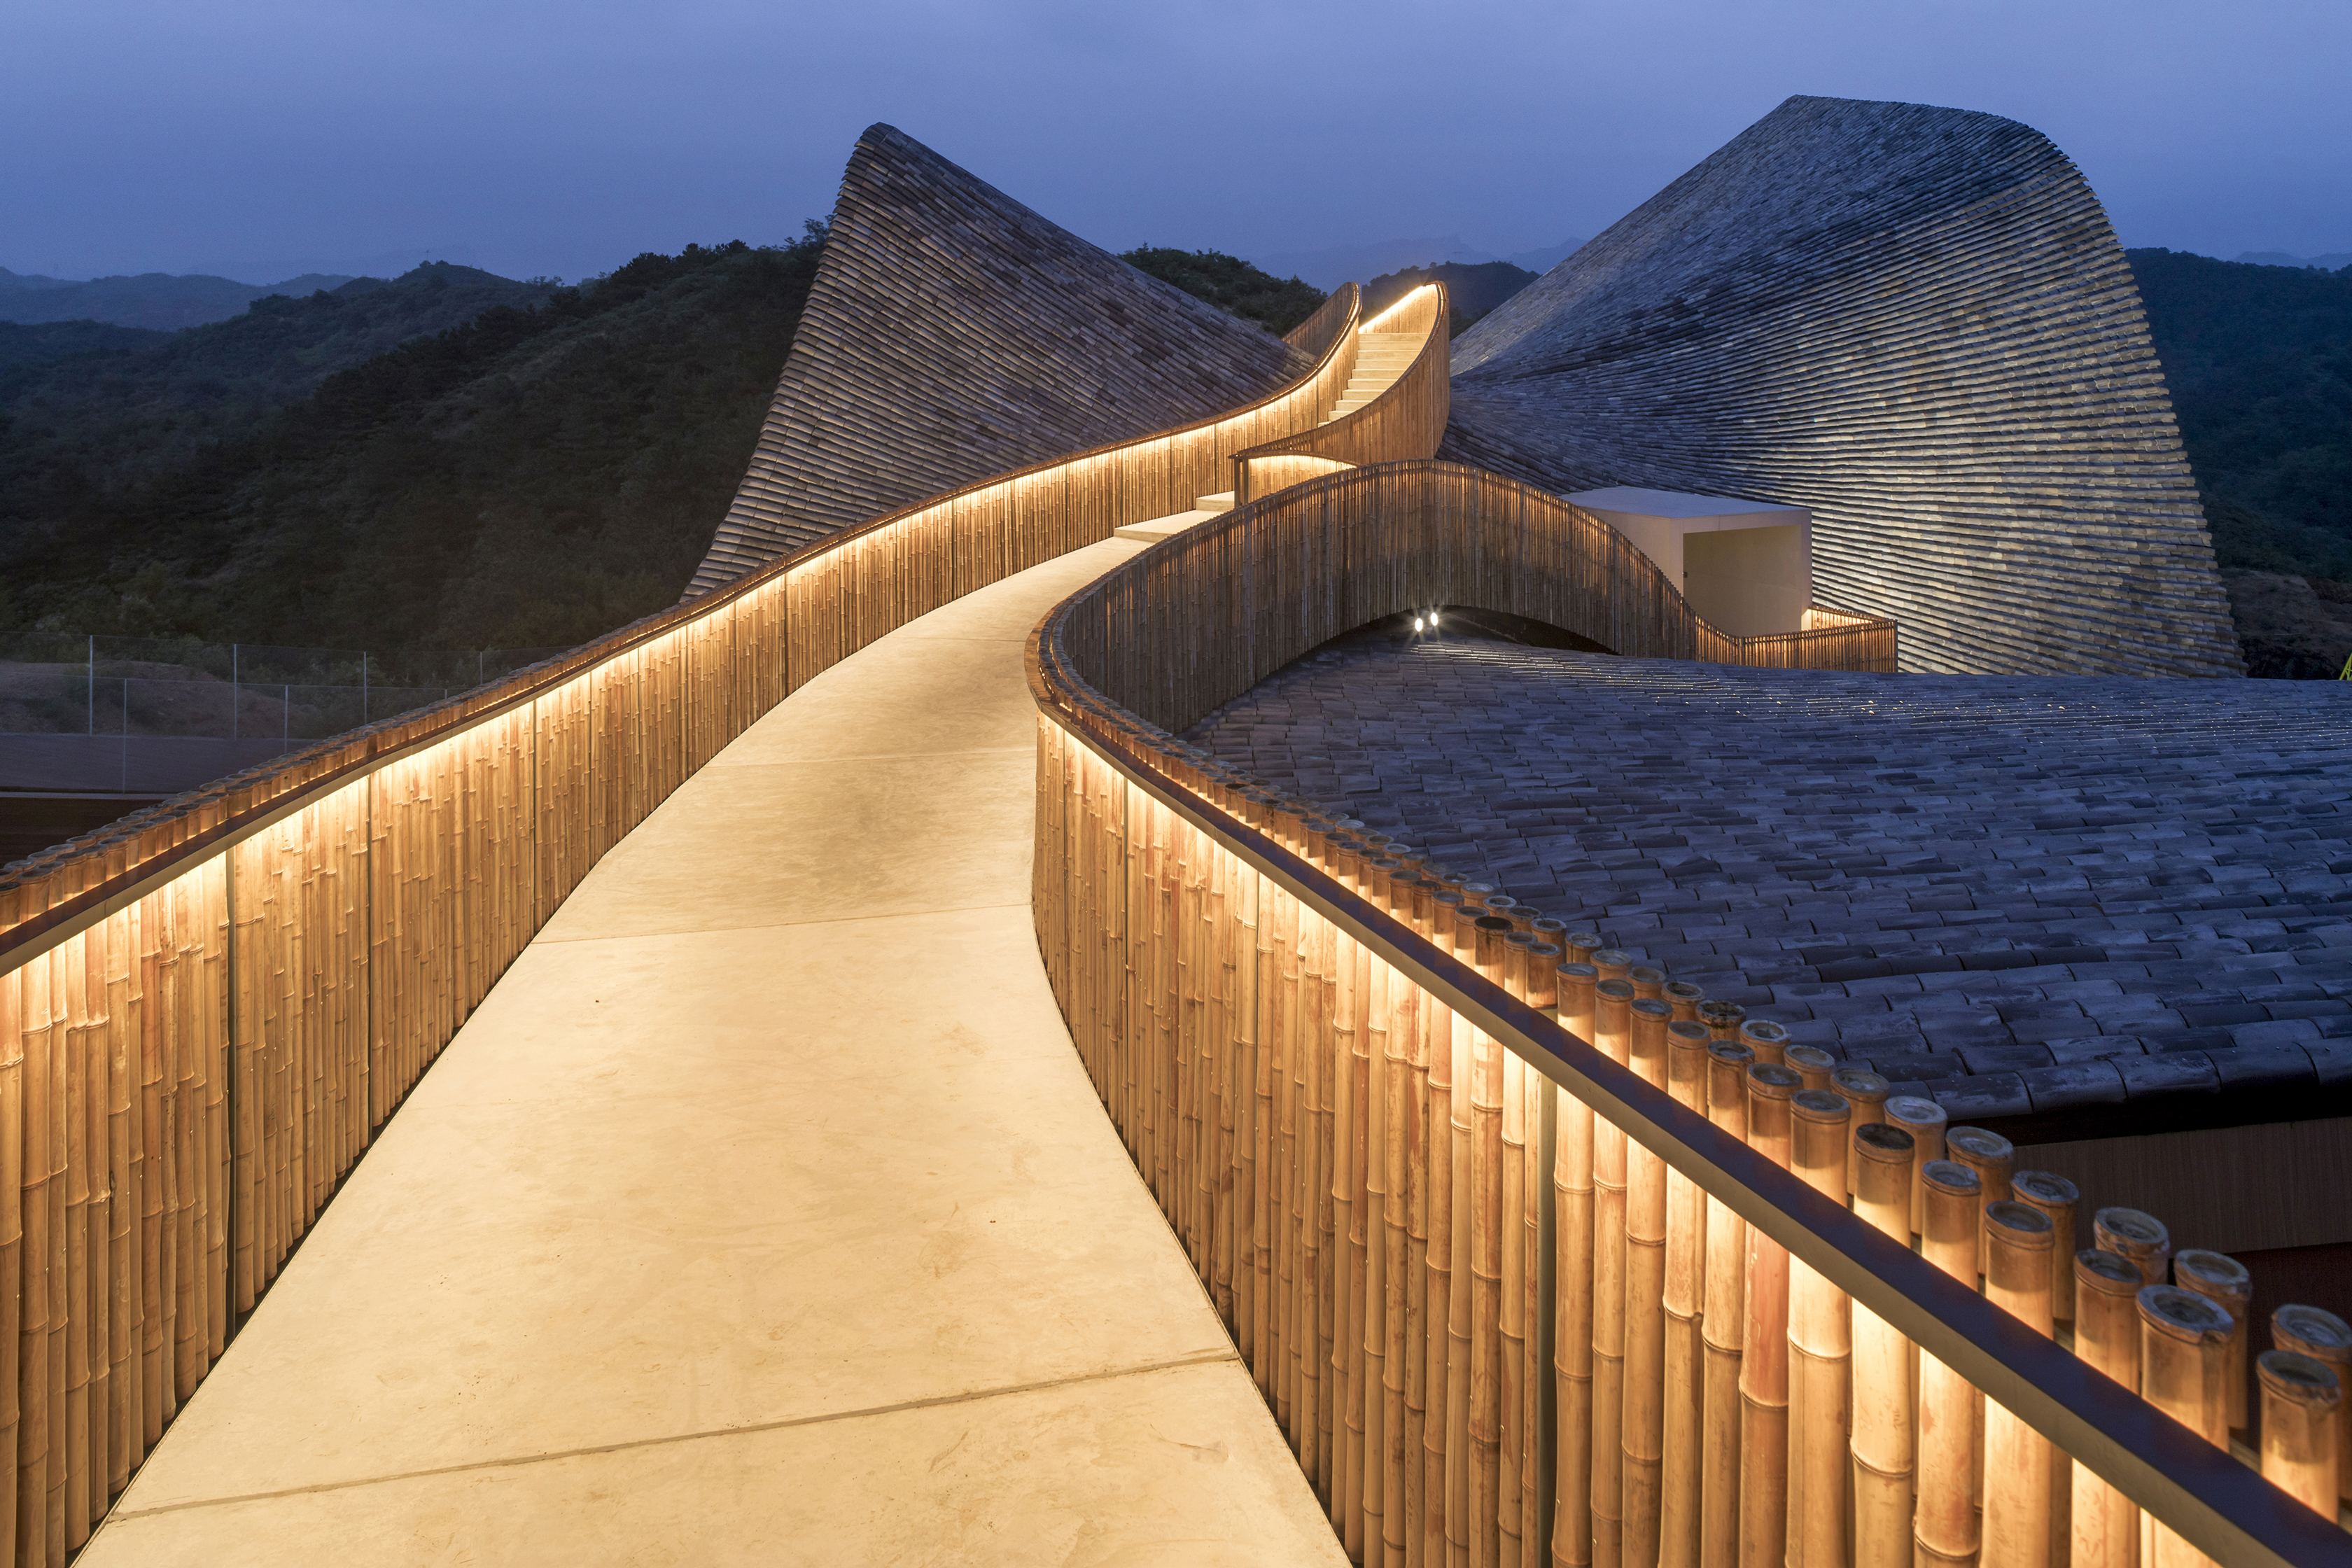 Lamp Awards 2019 Finalist - The Phoenix Valley Summit Art Center